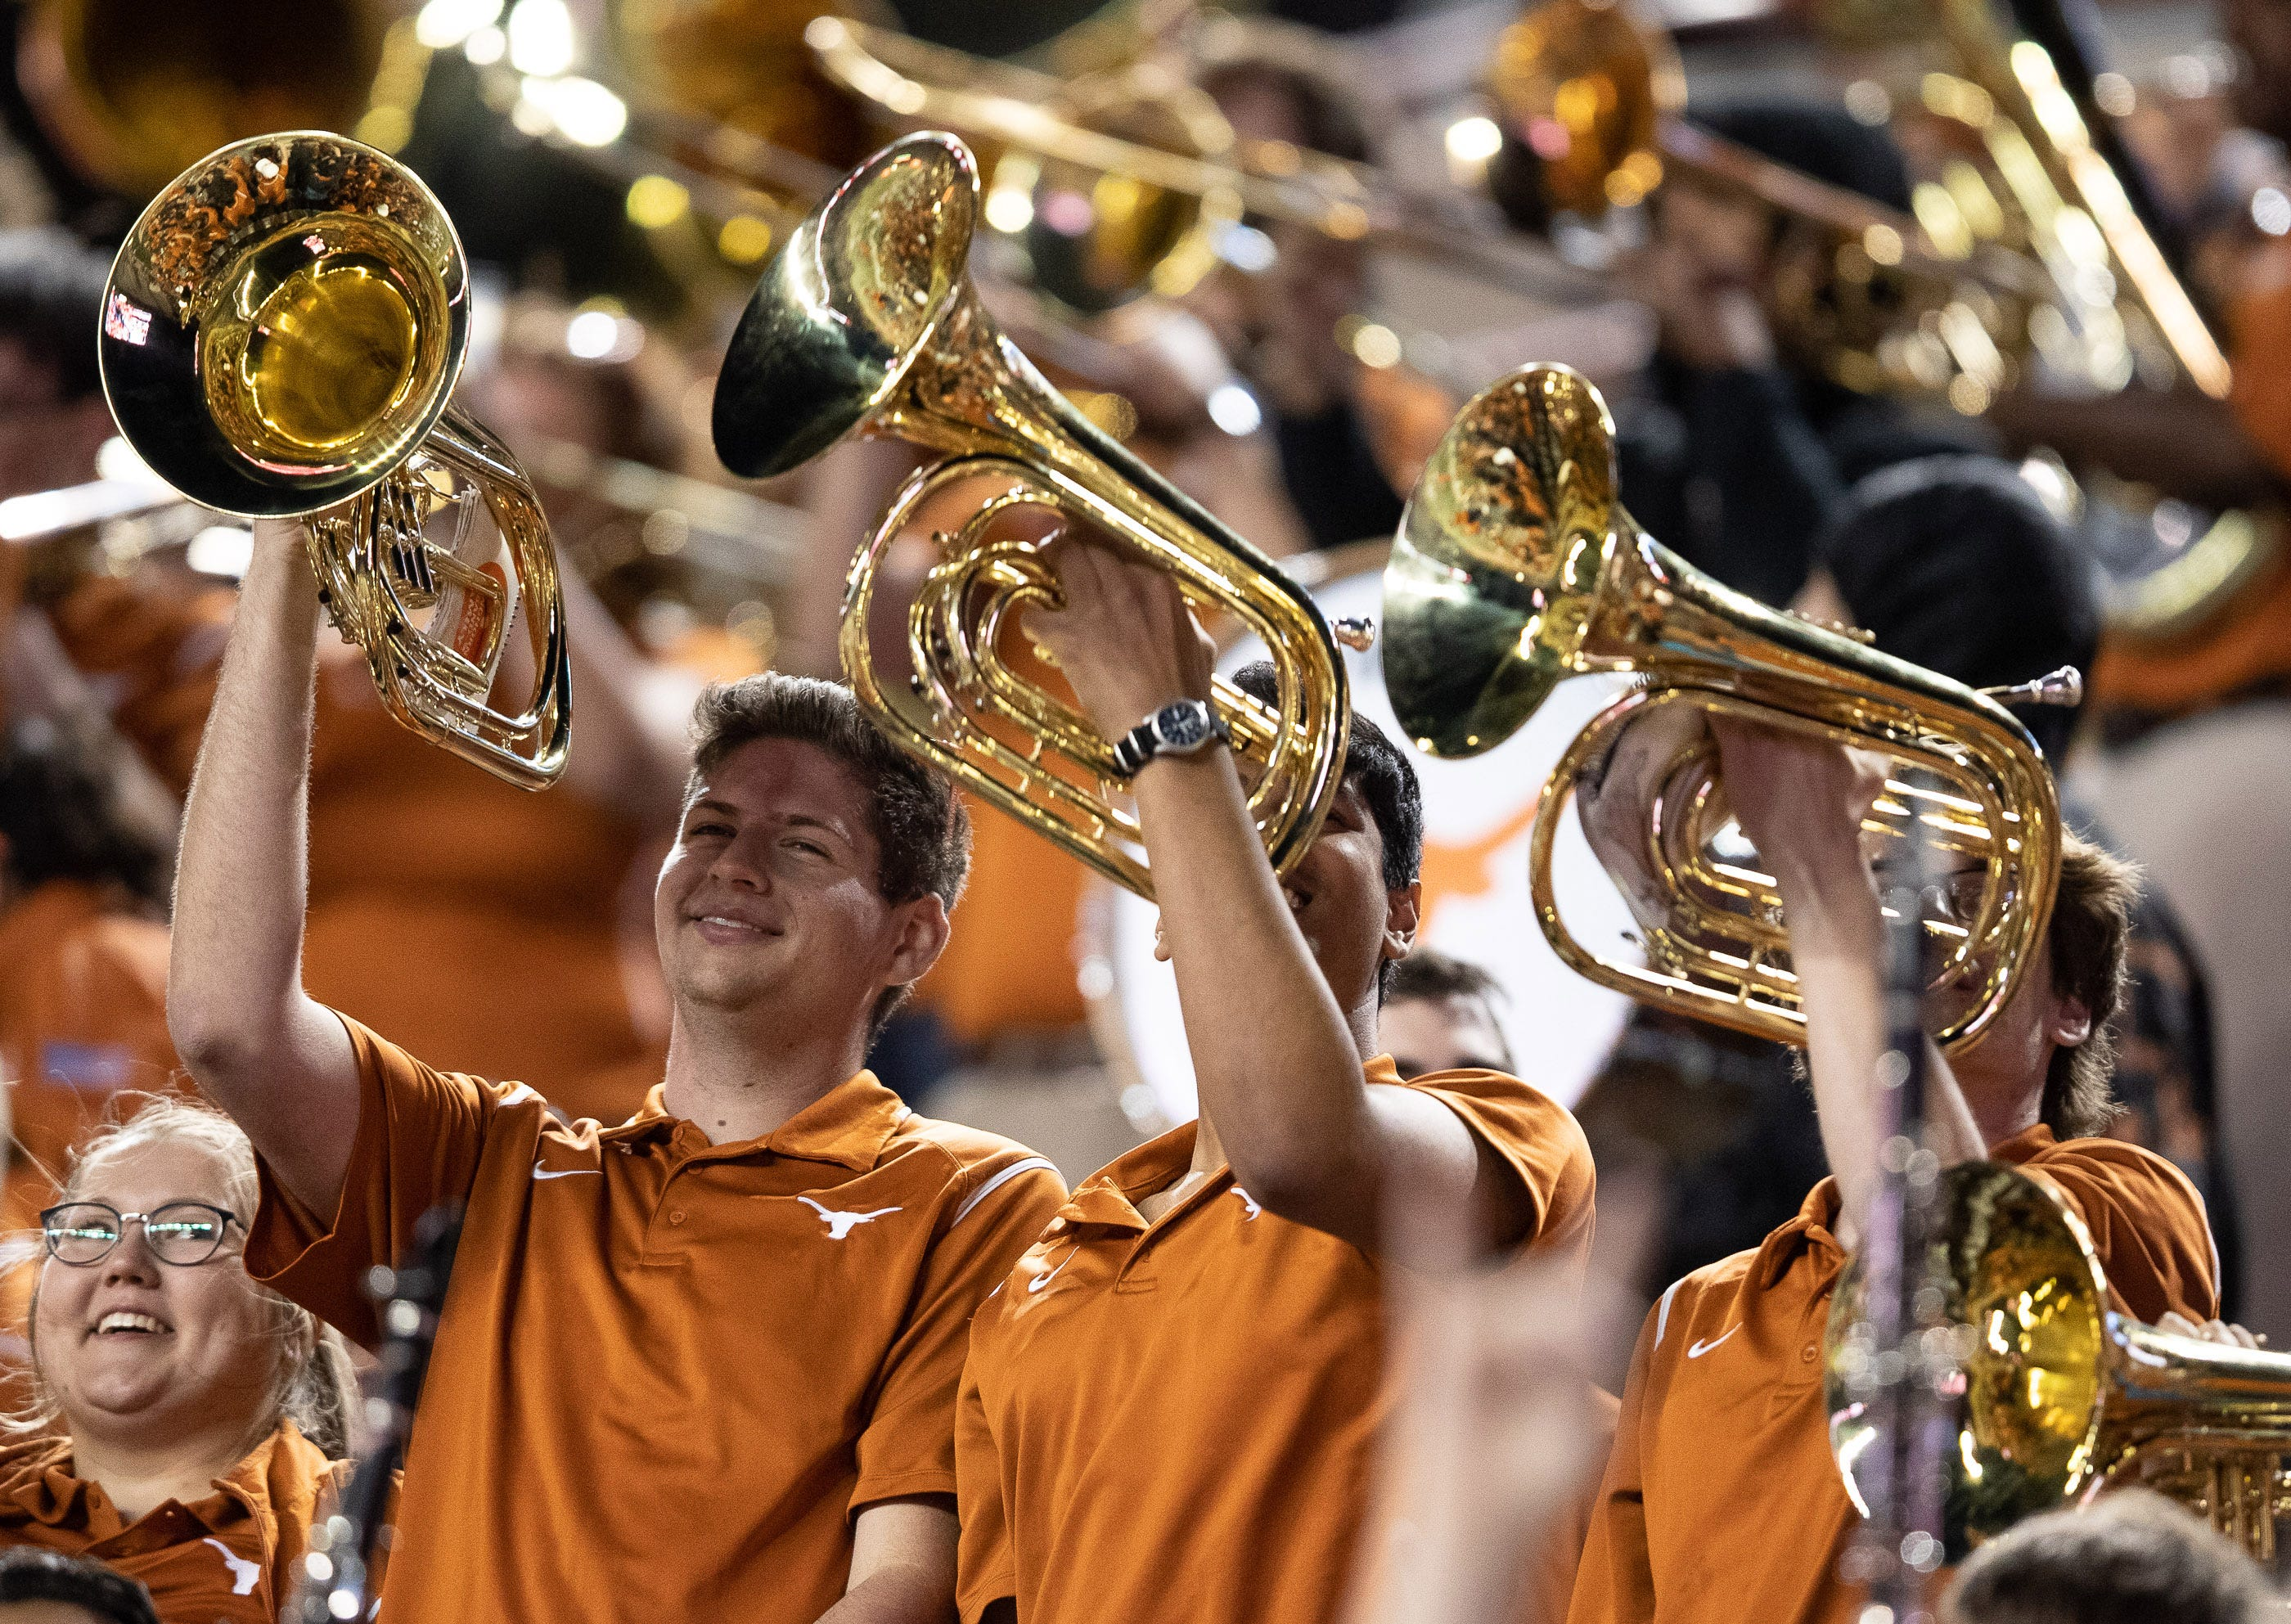 Longhorn Band may not return to games in 2020 until 'The Eyes of Texas' issue is resolved